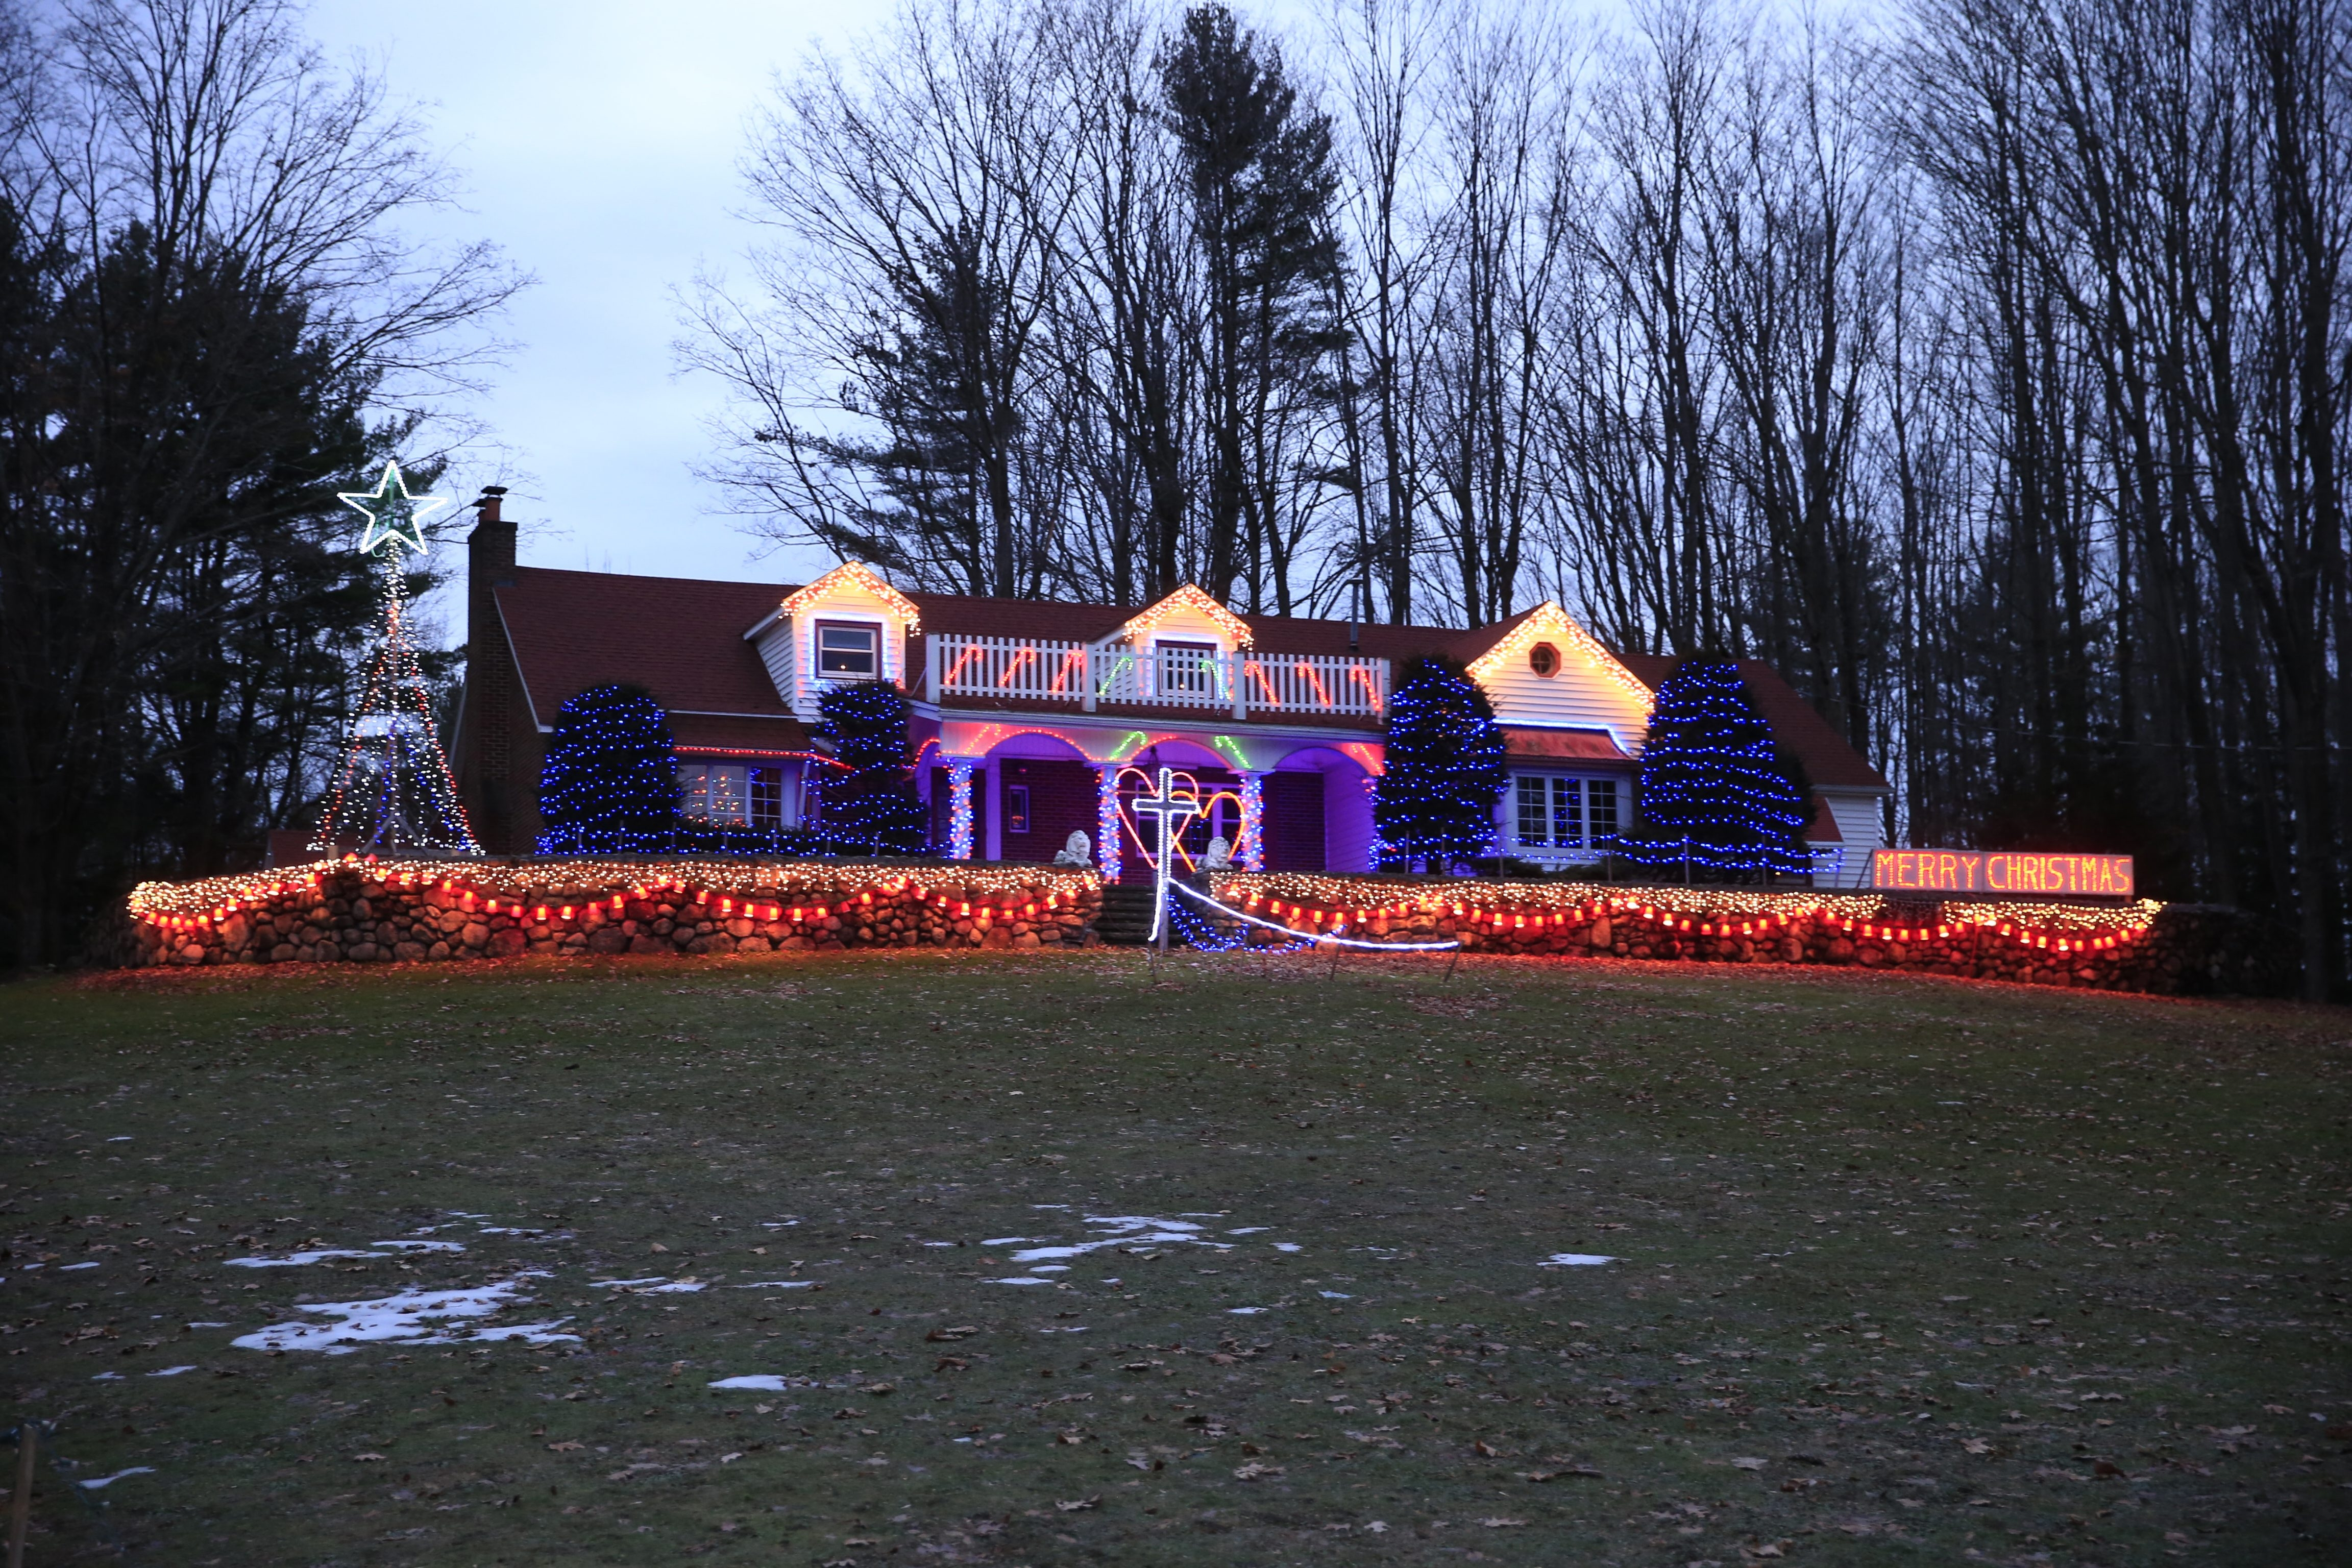 Domenick DellaNeve told The Buffalo News in 1993 that he started decorating his house at 4663 Clark St., Hamburg, for no apparent reason. It shines on this year because his son decided it was what his parents, now both deceased, would have wanted.